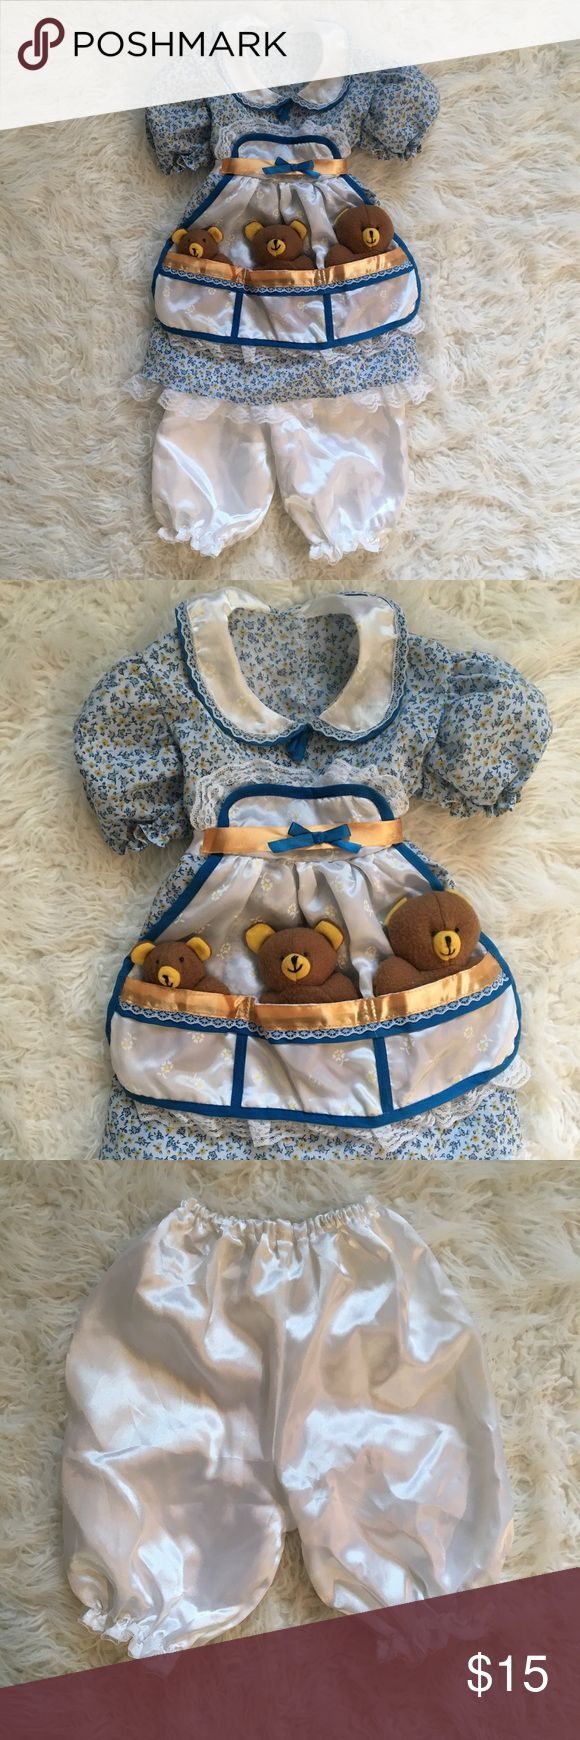 "Child's Goldilocks Costume Used, in very good condition! Makes such a sweet Halloween costume! Tag says size ""toddler"". I'd say this fits approximately 18 months - 2T. Costumes Halloween"